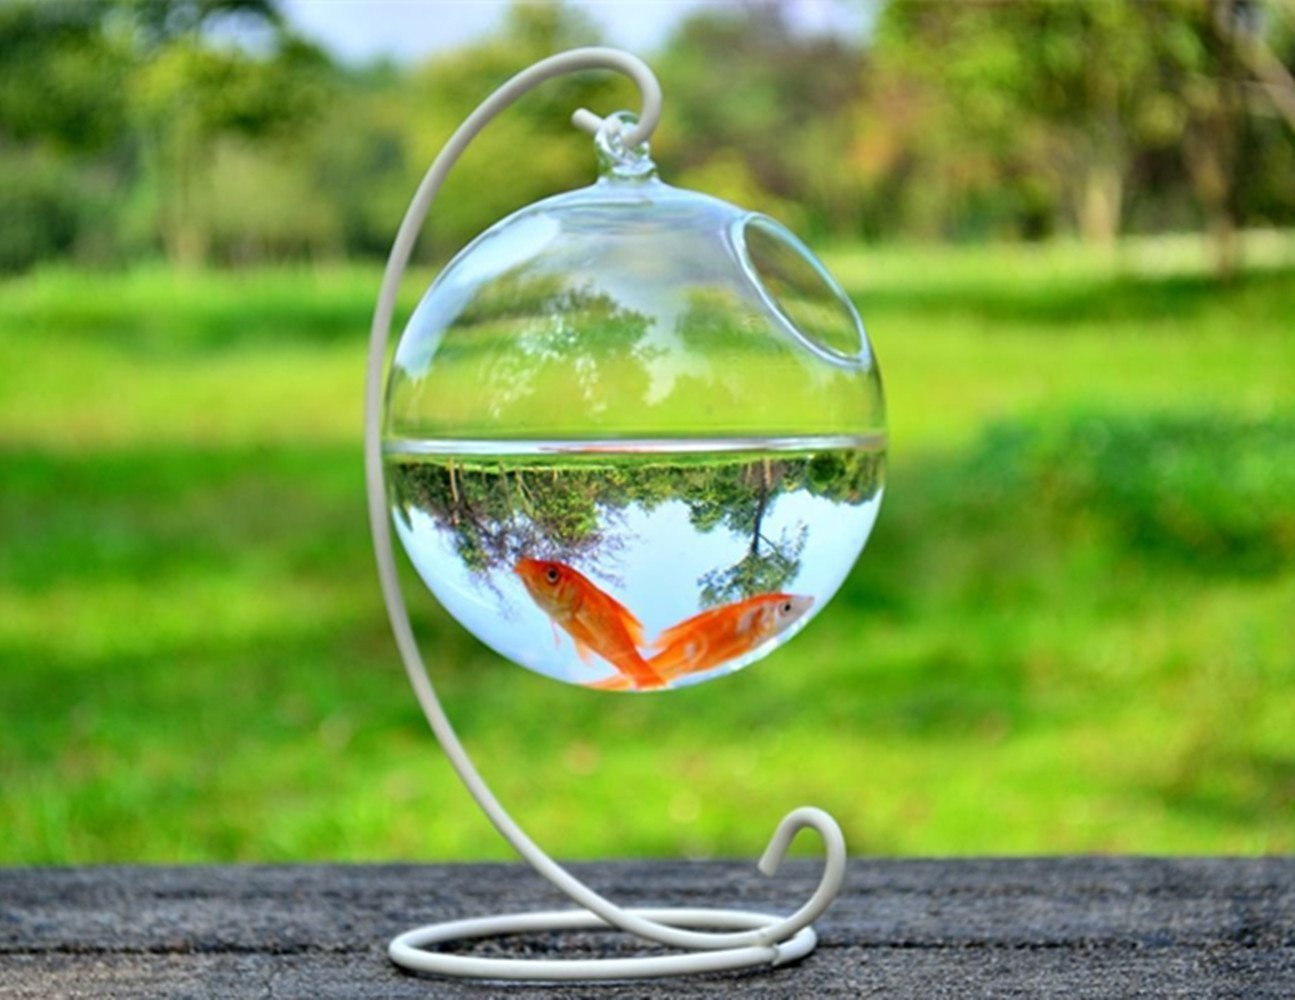 Smart sisi Aquarium Transparent sphérique en verre à suspendre (Comprend le support + Bol en verre)